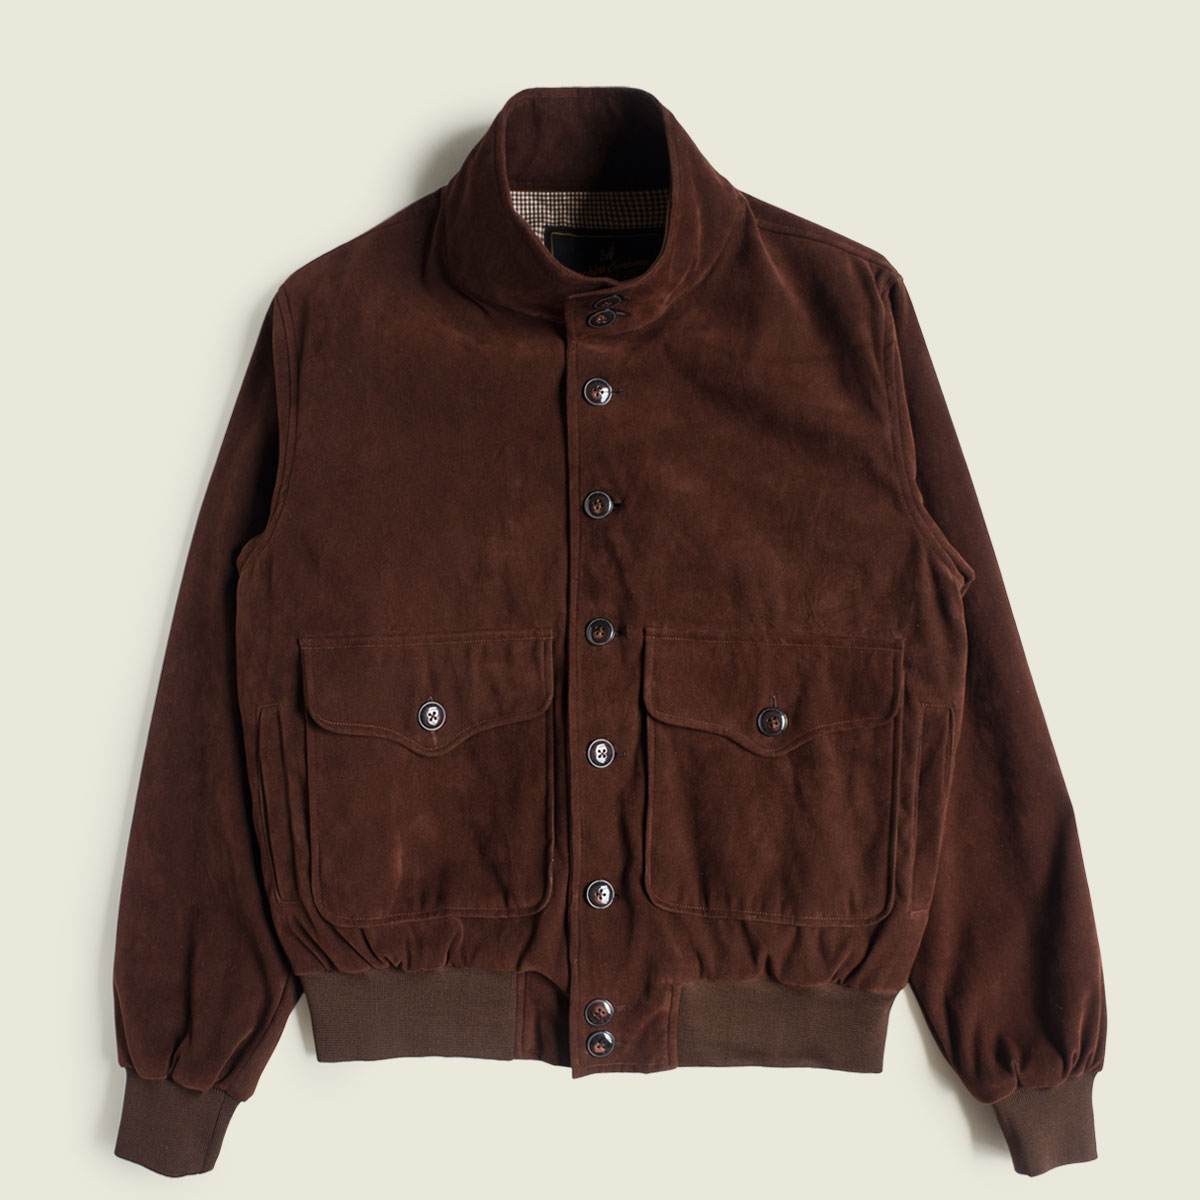 A-1 Suede Flight Jacket